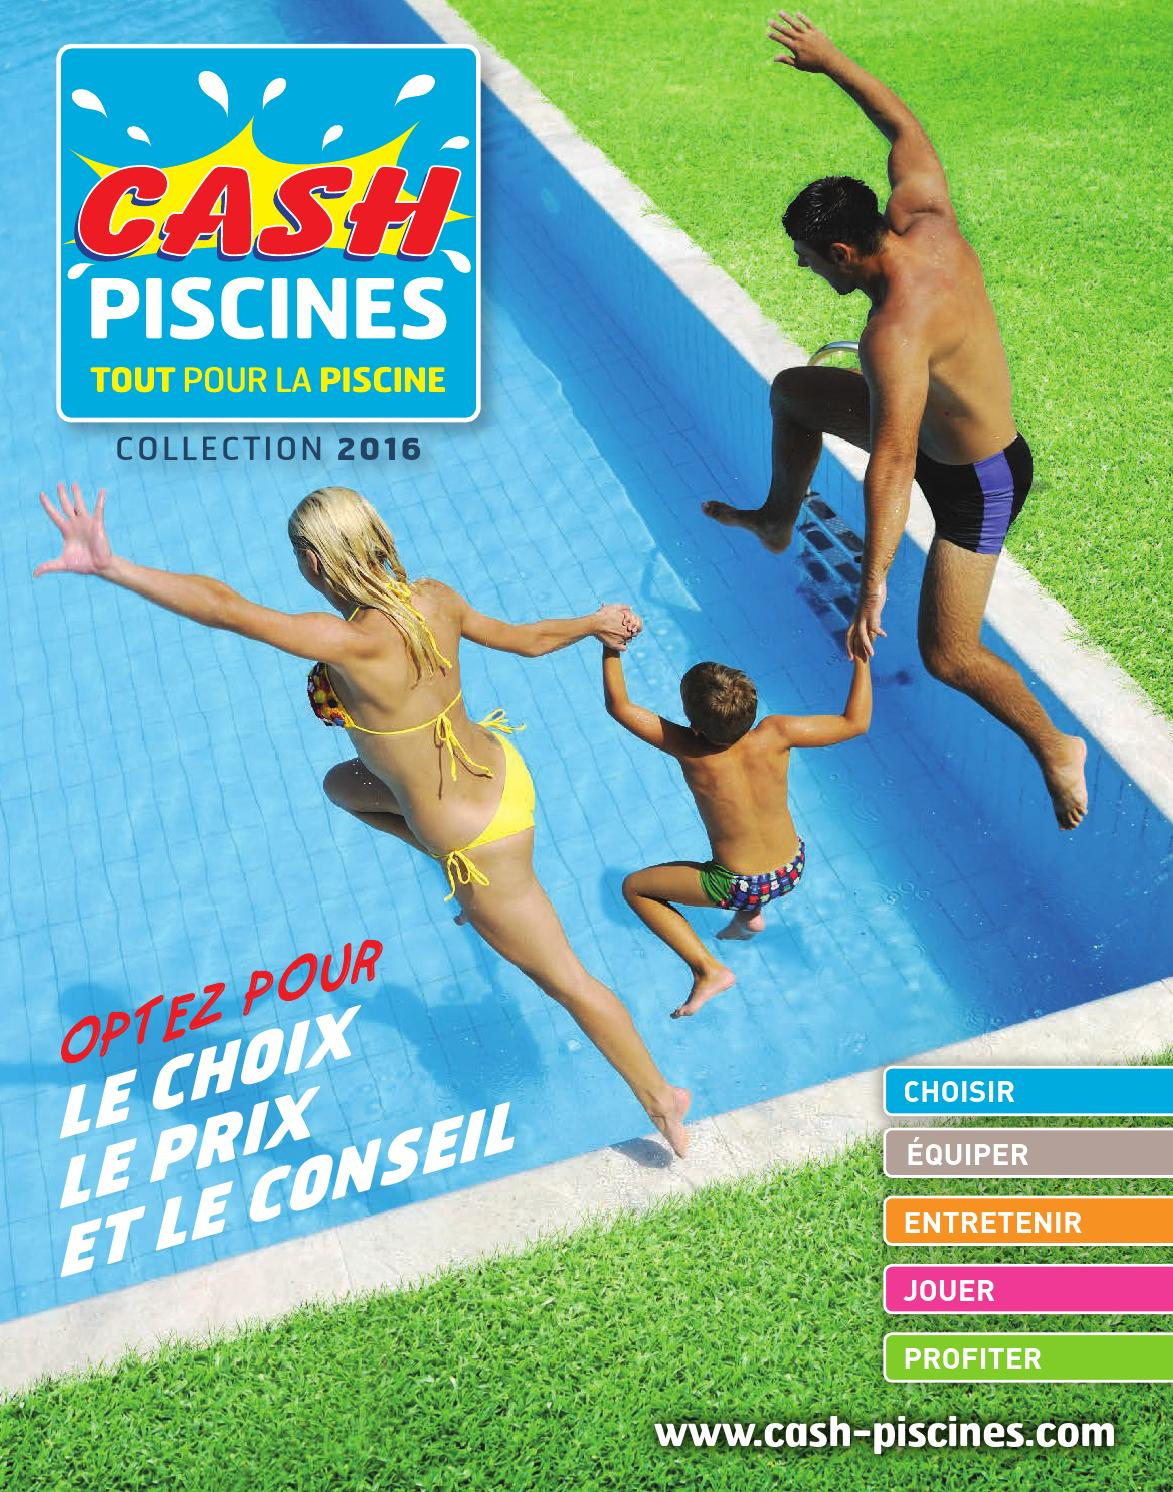 Cash piscines 2016 by octave octave issuu for Cash piscine 71